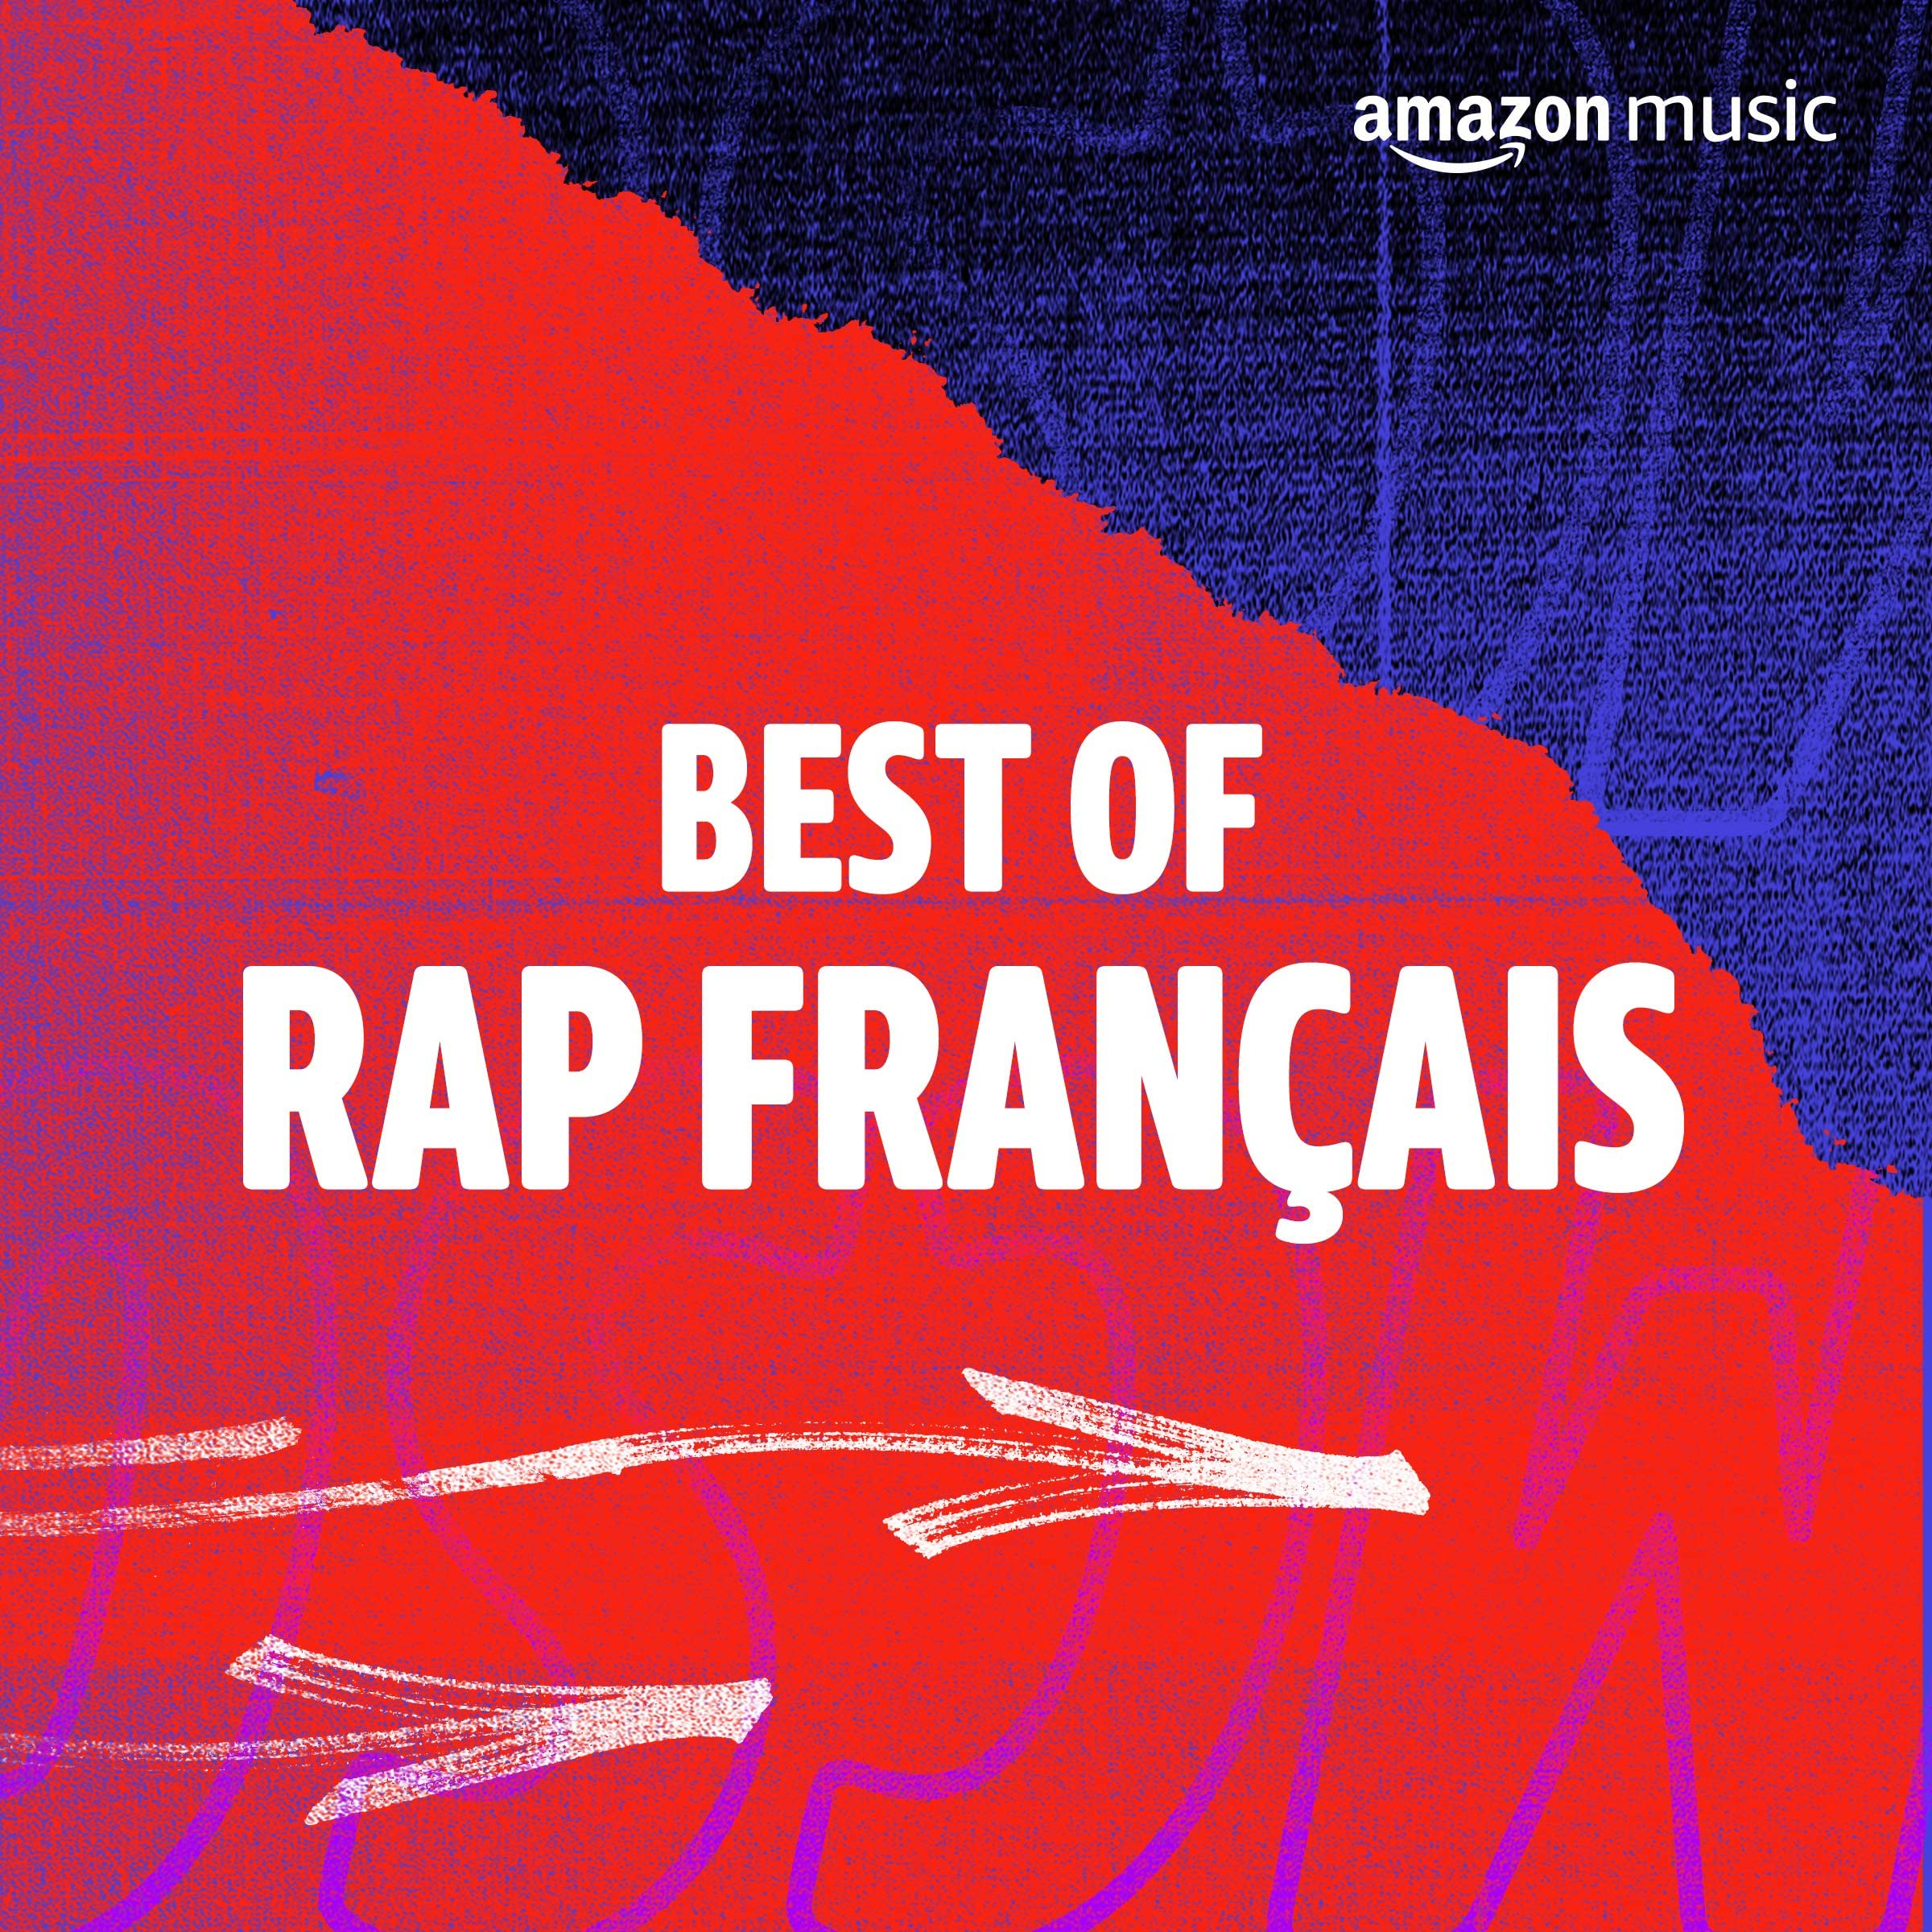 Best of Rap français